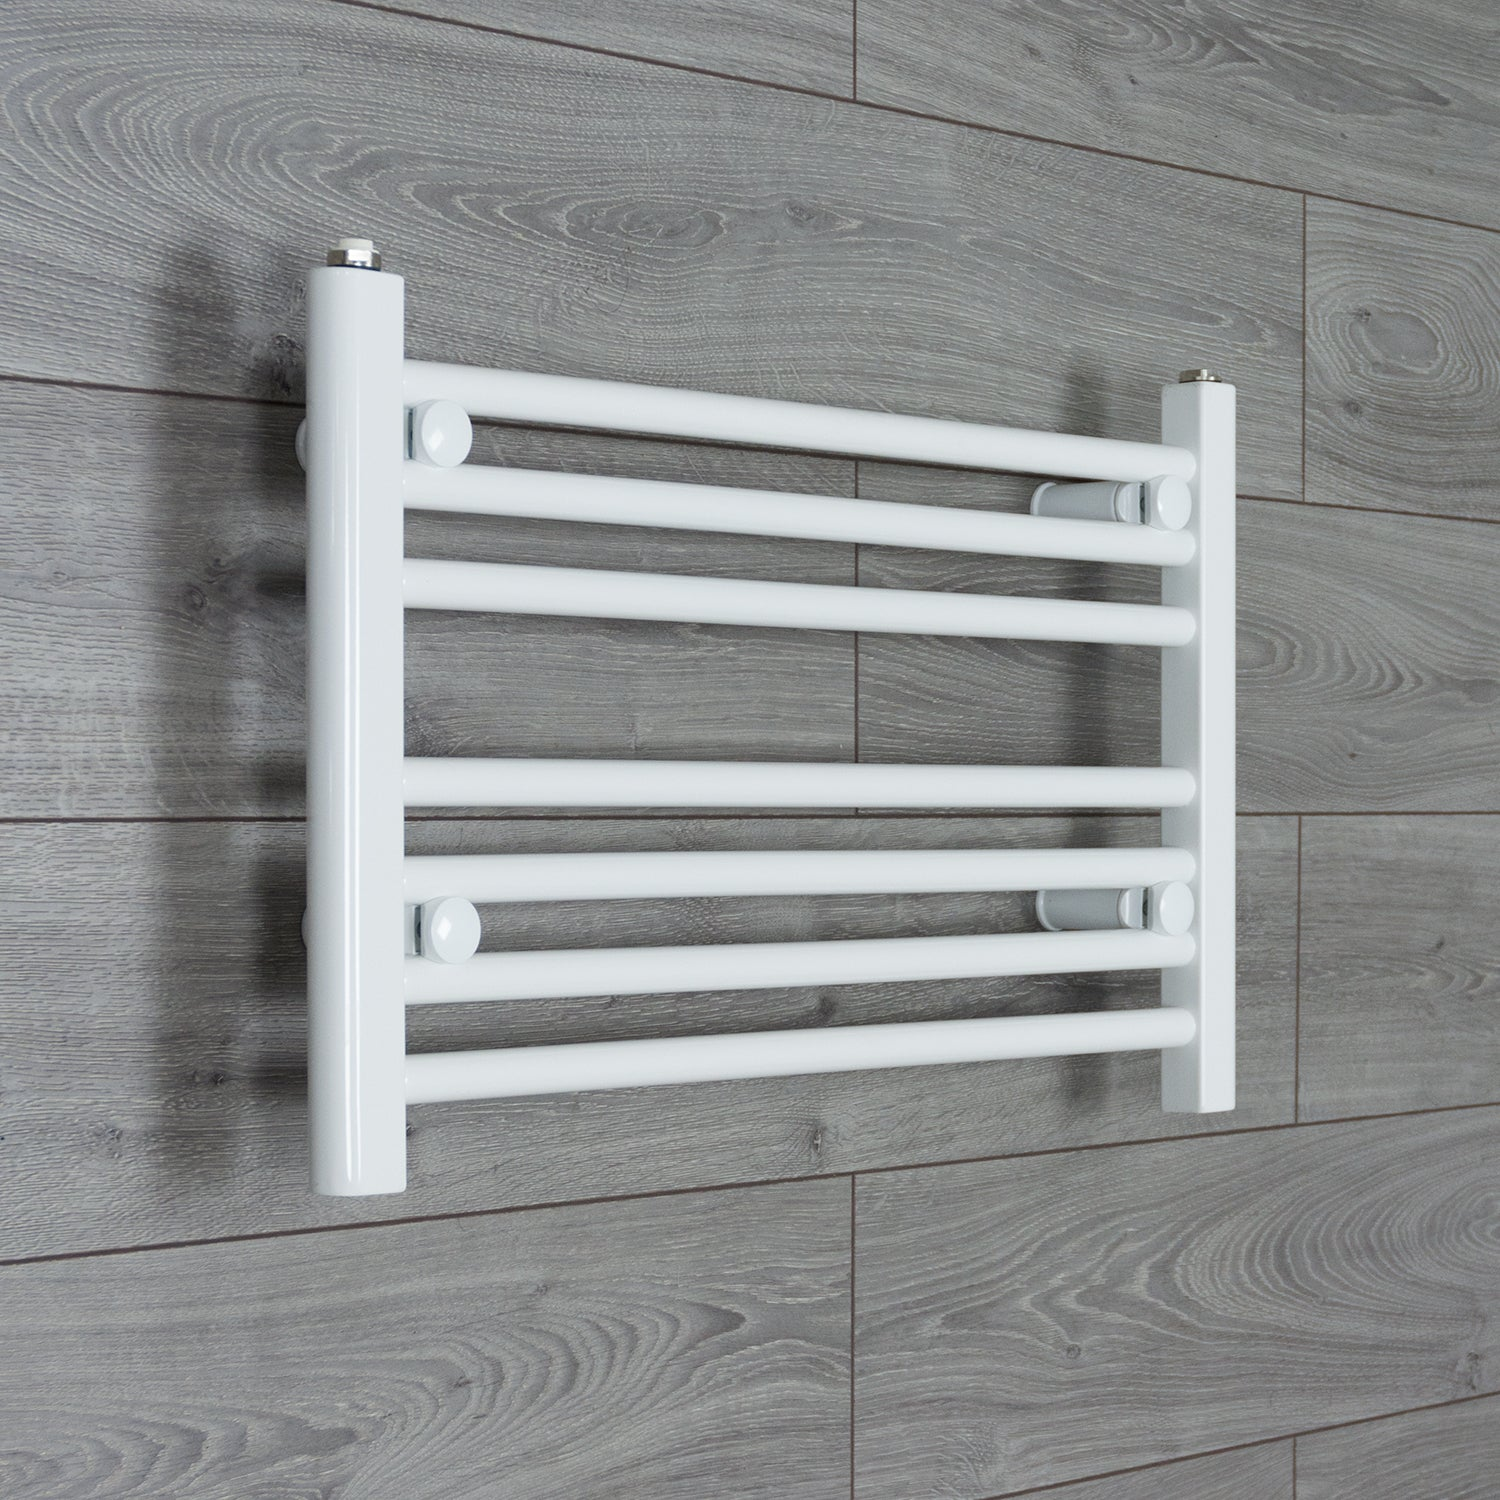 600mm Wide 400mm High White Towel Rail Radiator